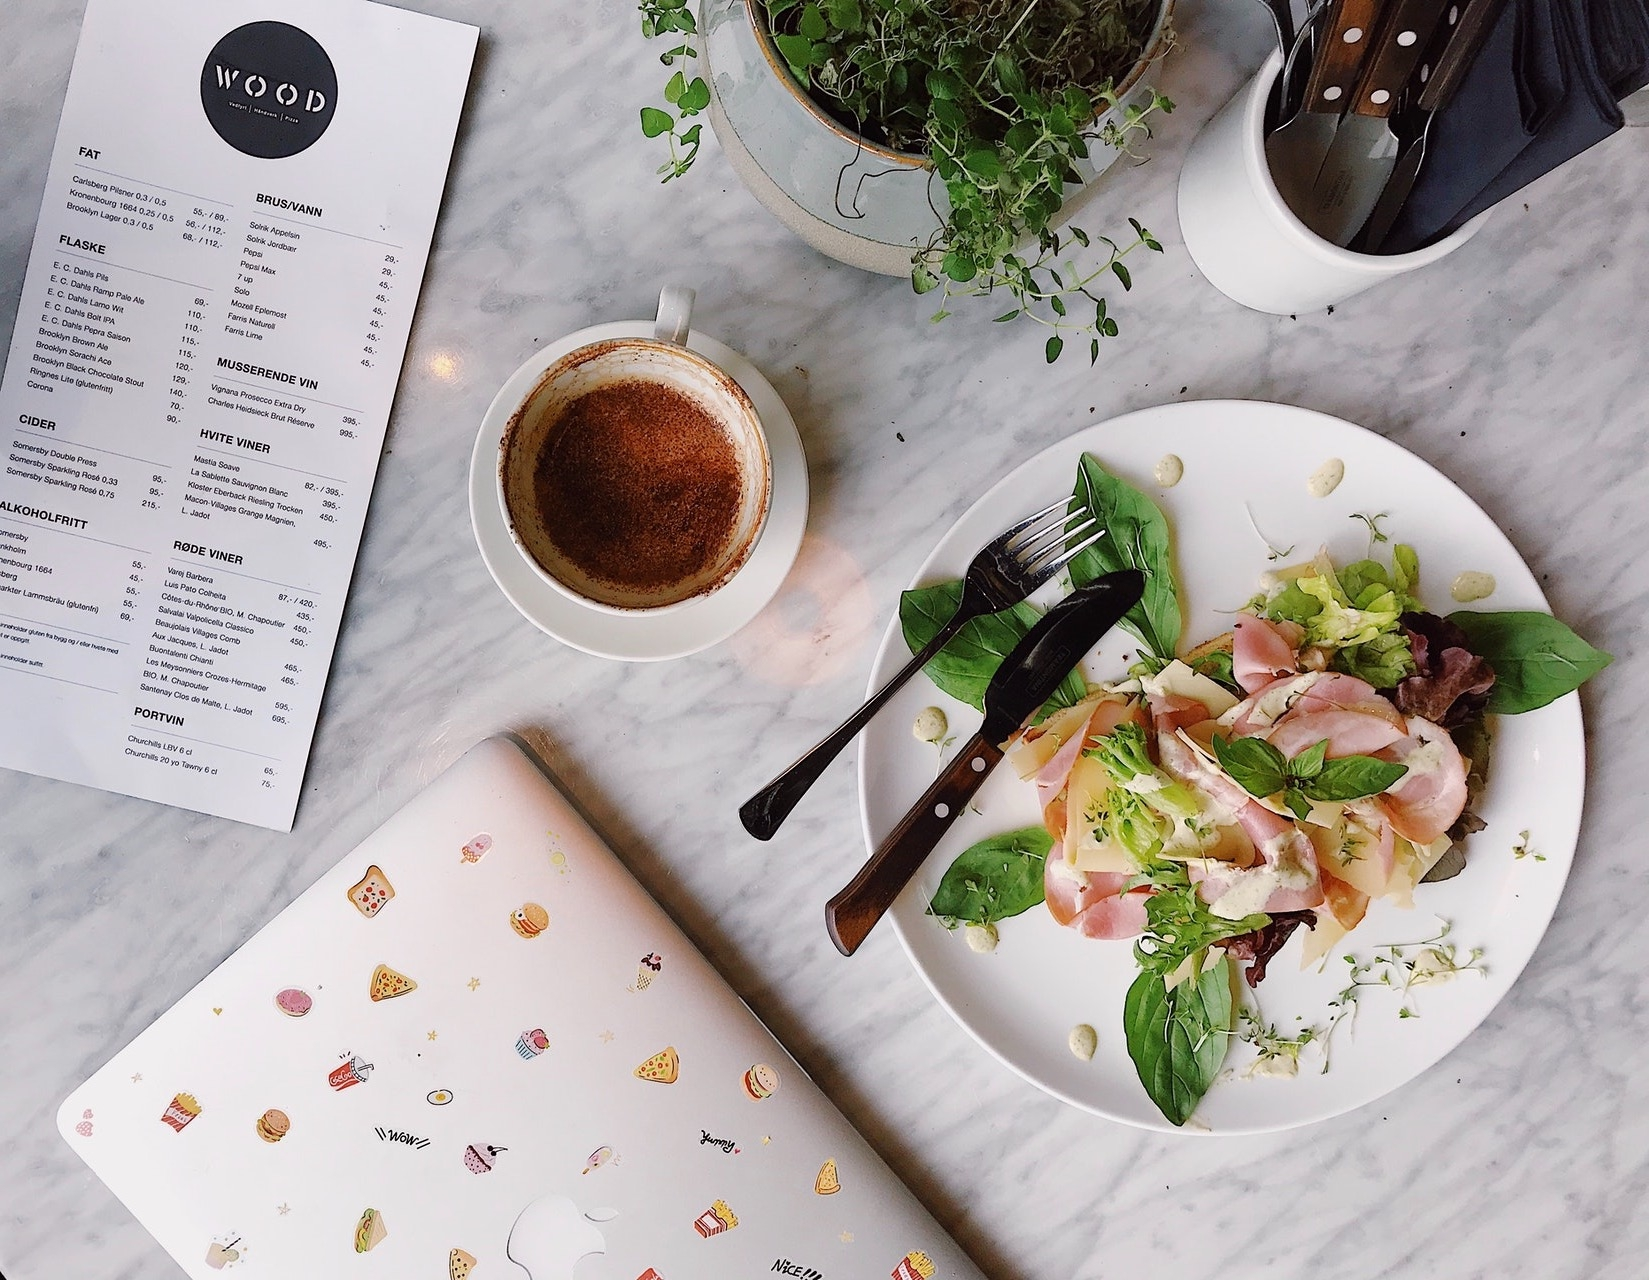 plate of food, coffee, laptop and menu on a table